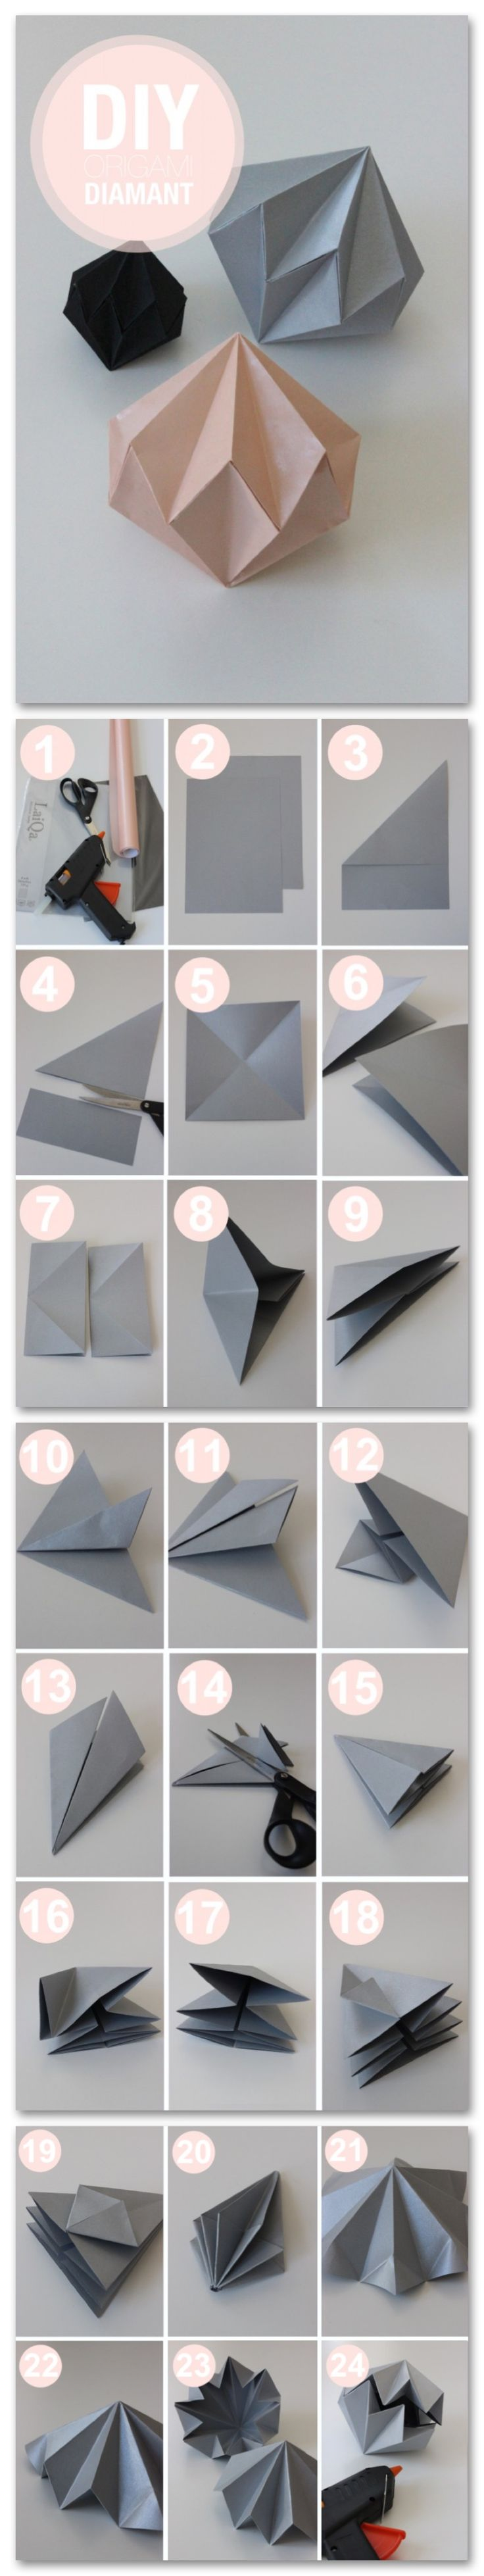 DIY: Origami diamond